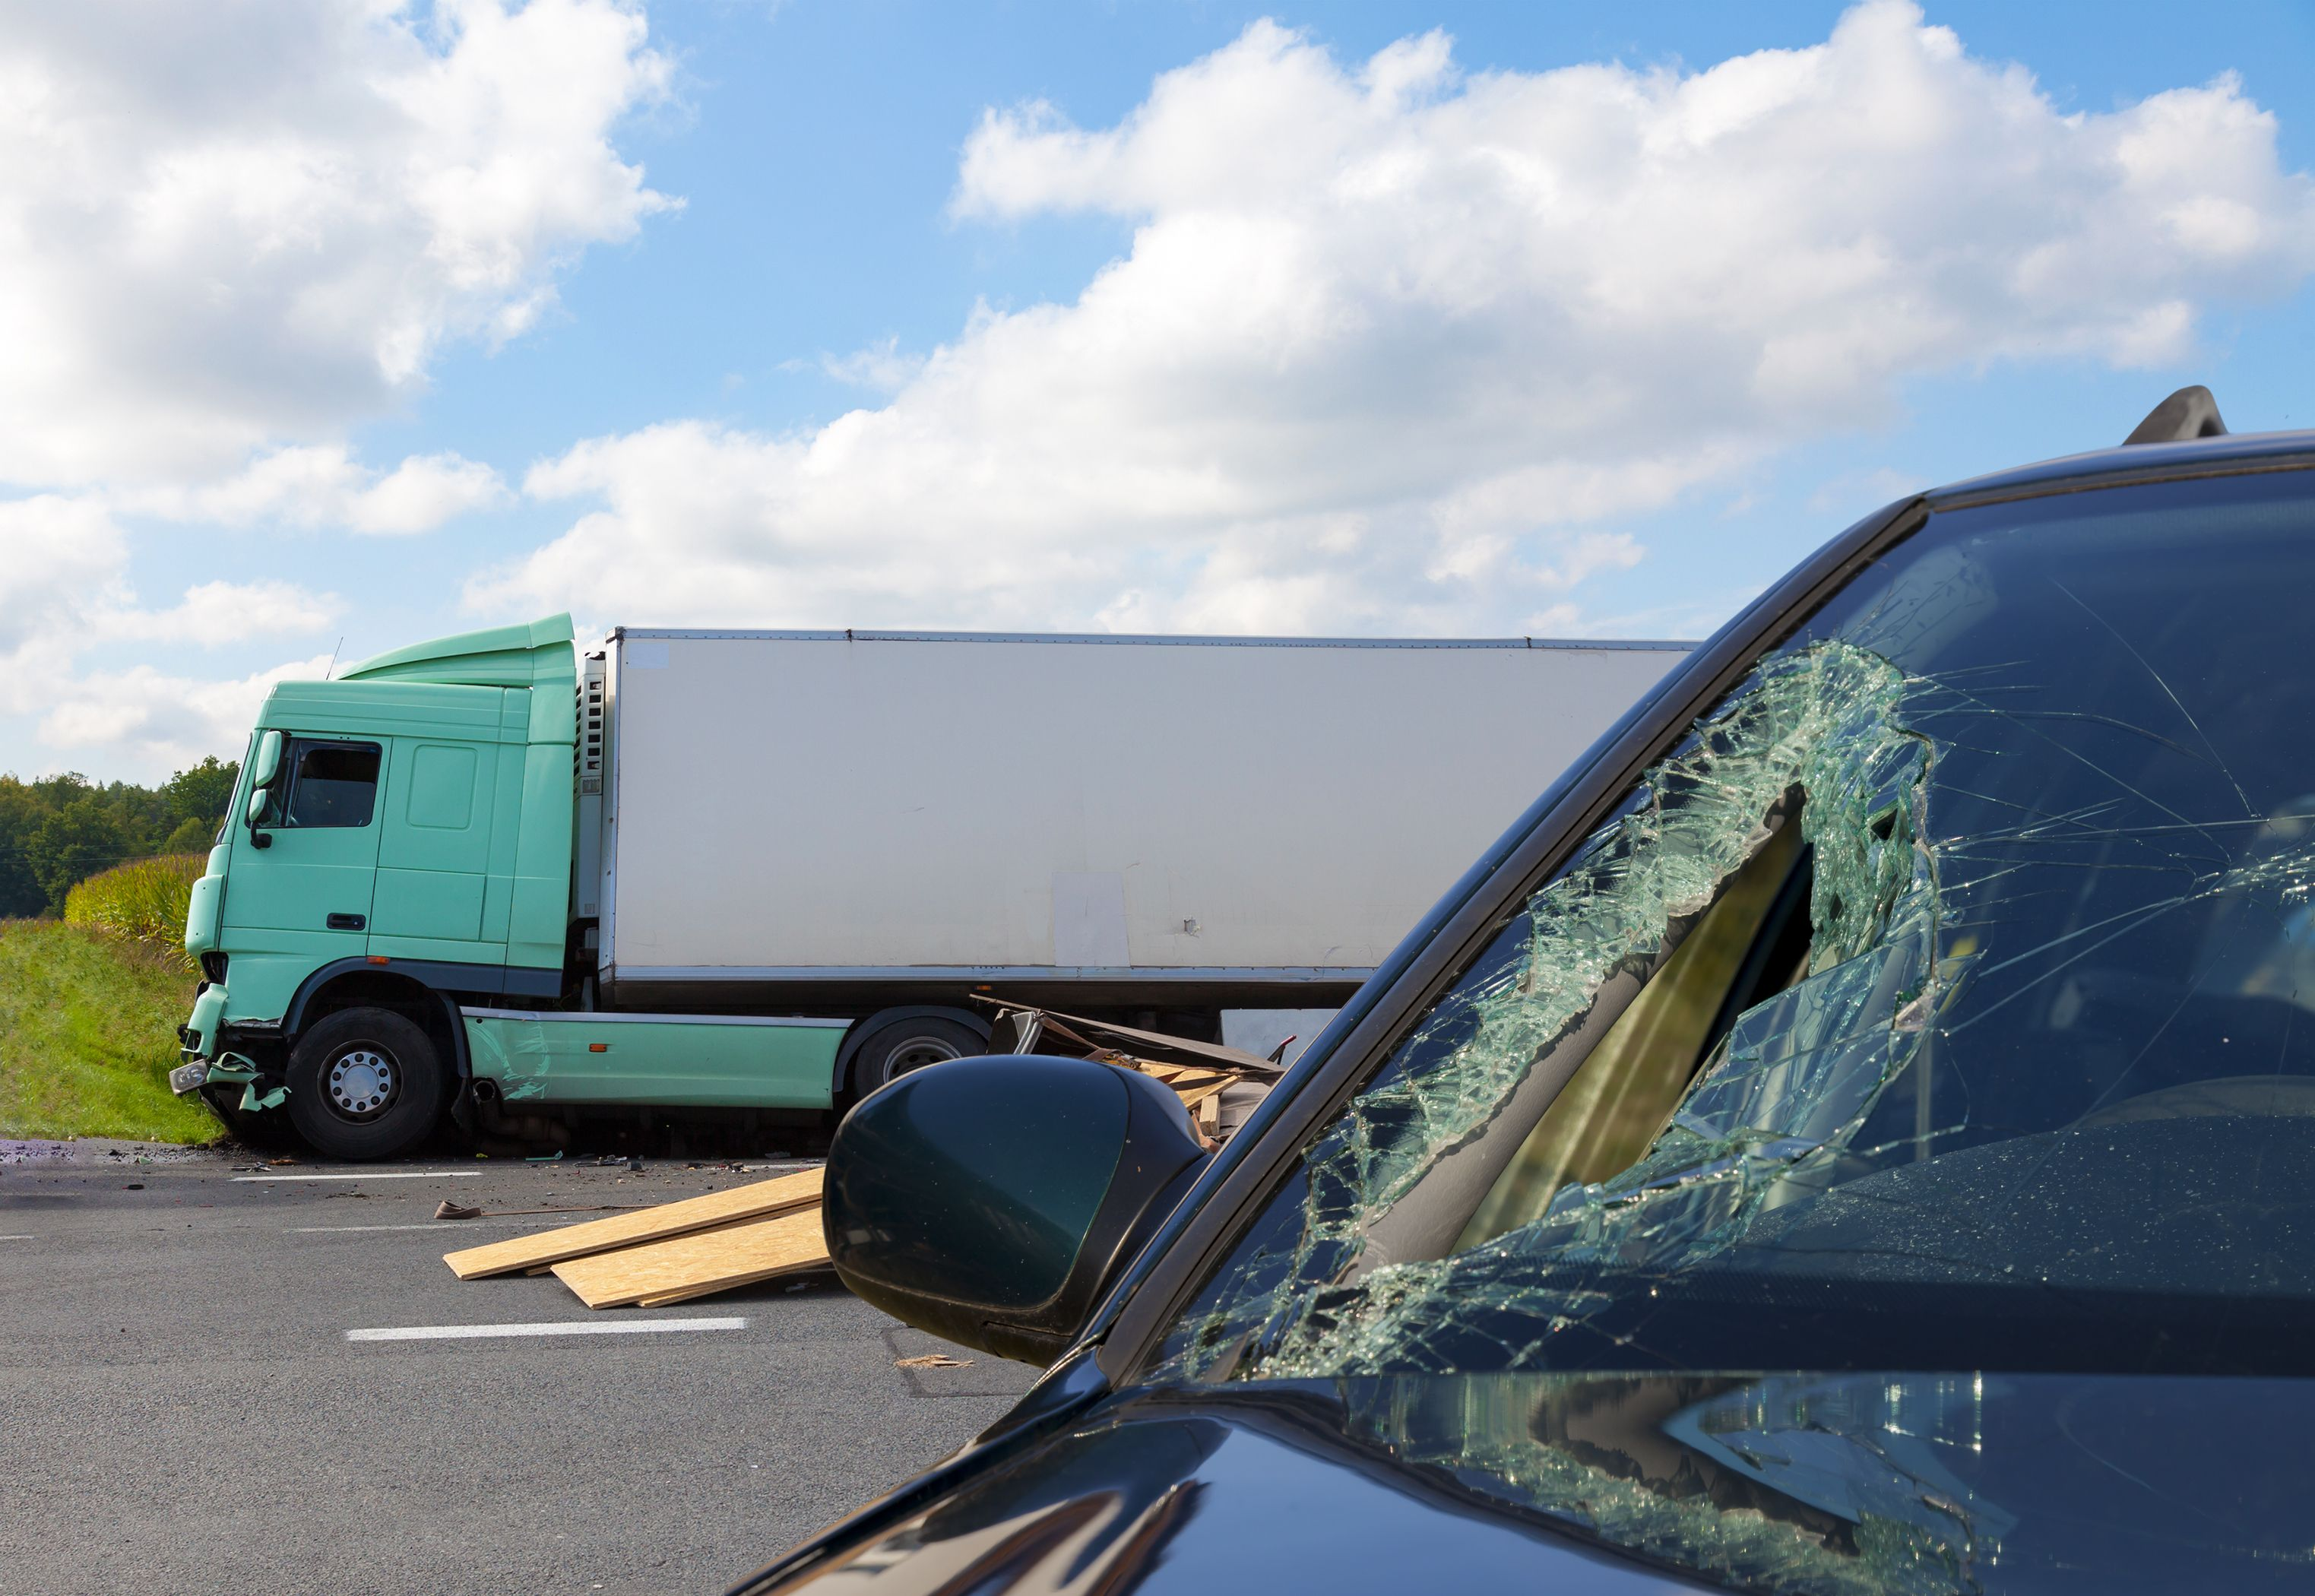 A broken windshield and a large commercial truck